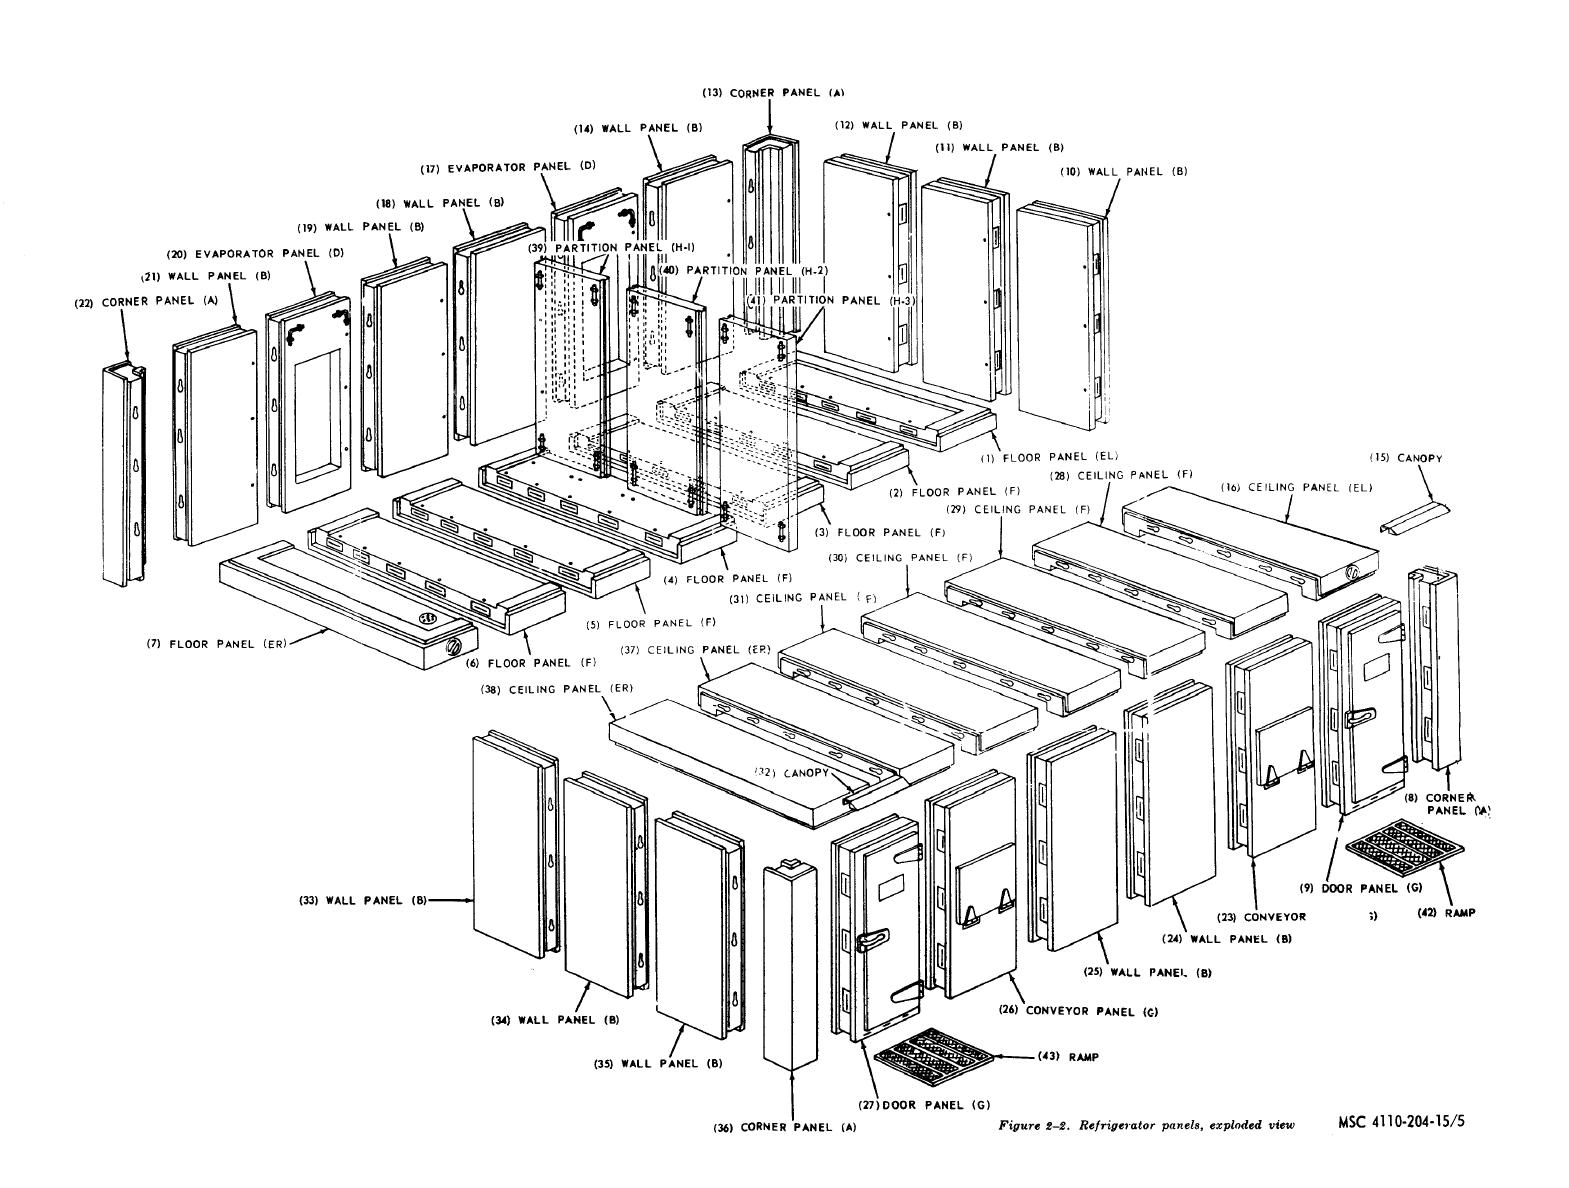 Figure 2 2 Refrigerator Panels Exploded View